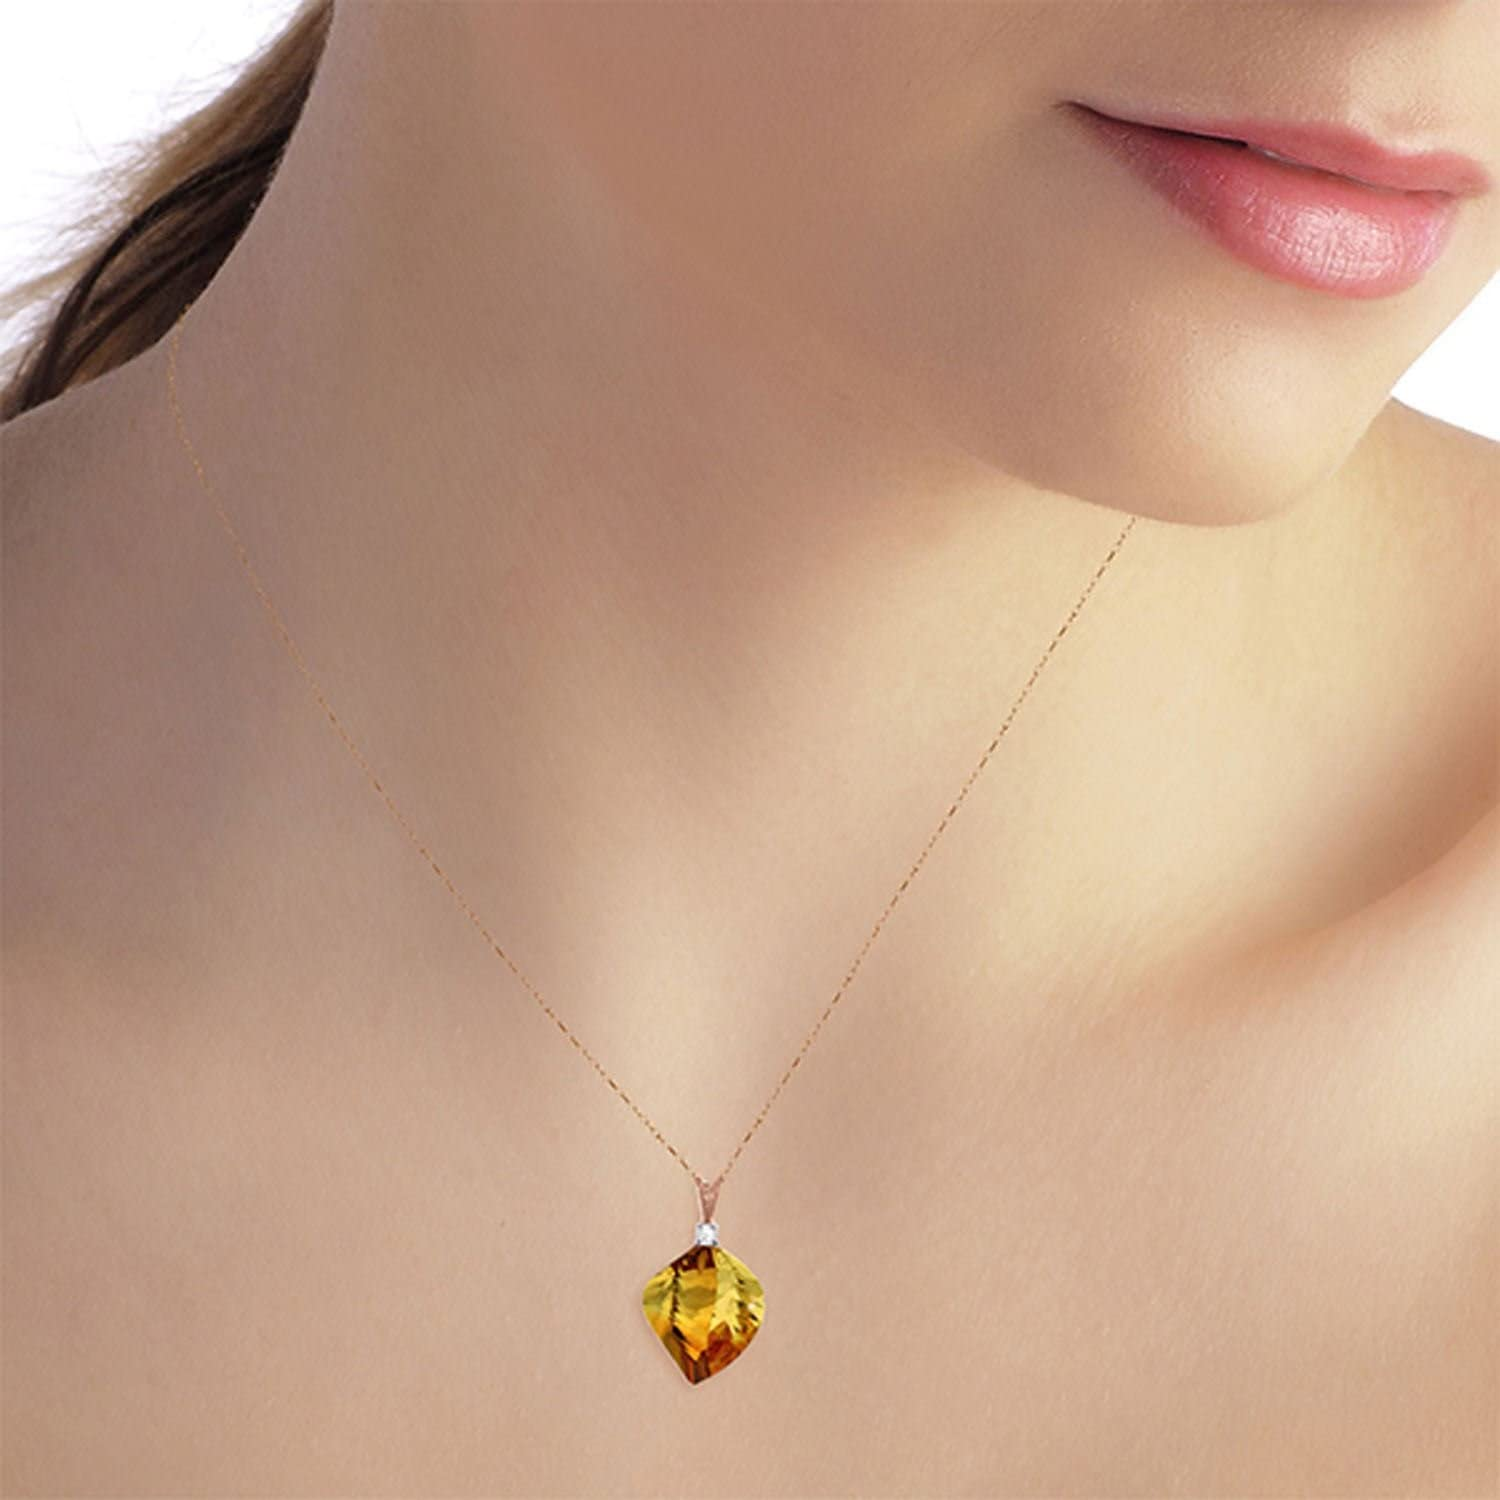 ALARRI 11.8 Carat 14K Solid Rose Gold Spiral Citrine Diamond Necklace with 18 Inch Chain Length